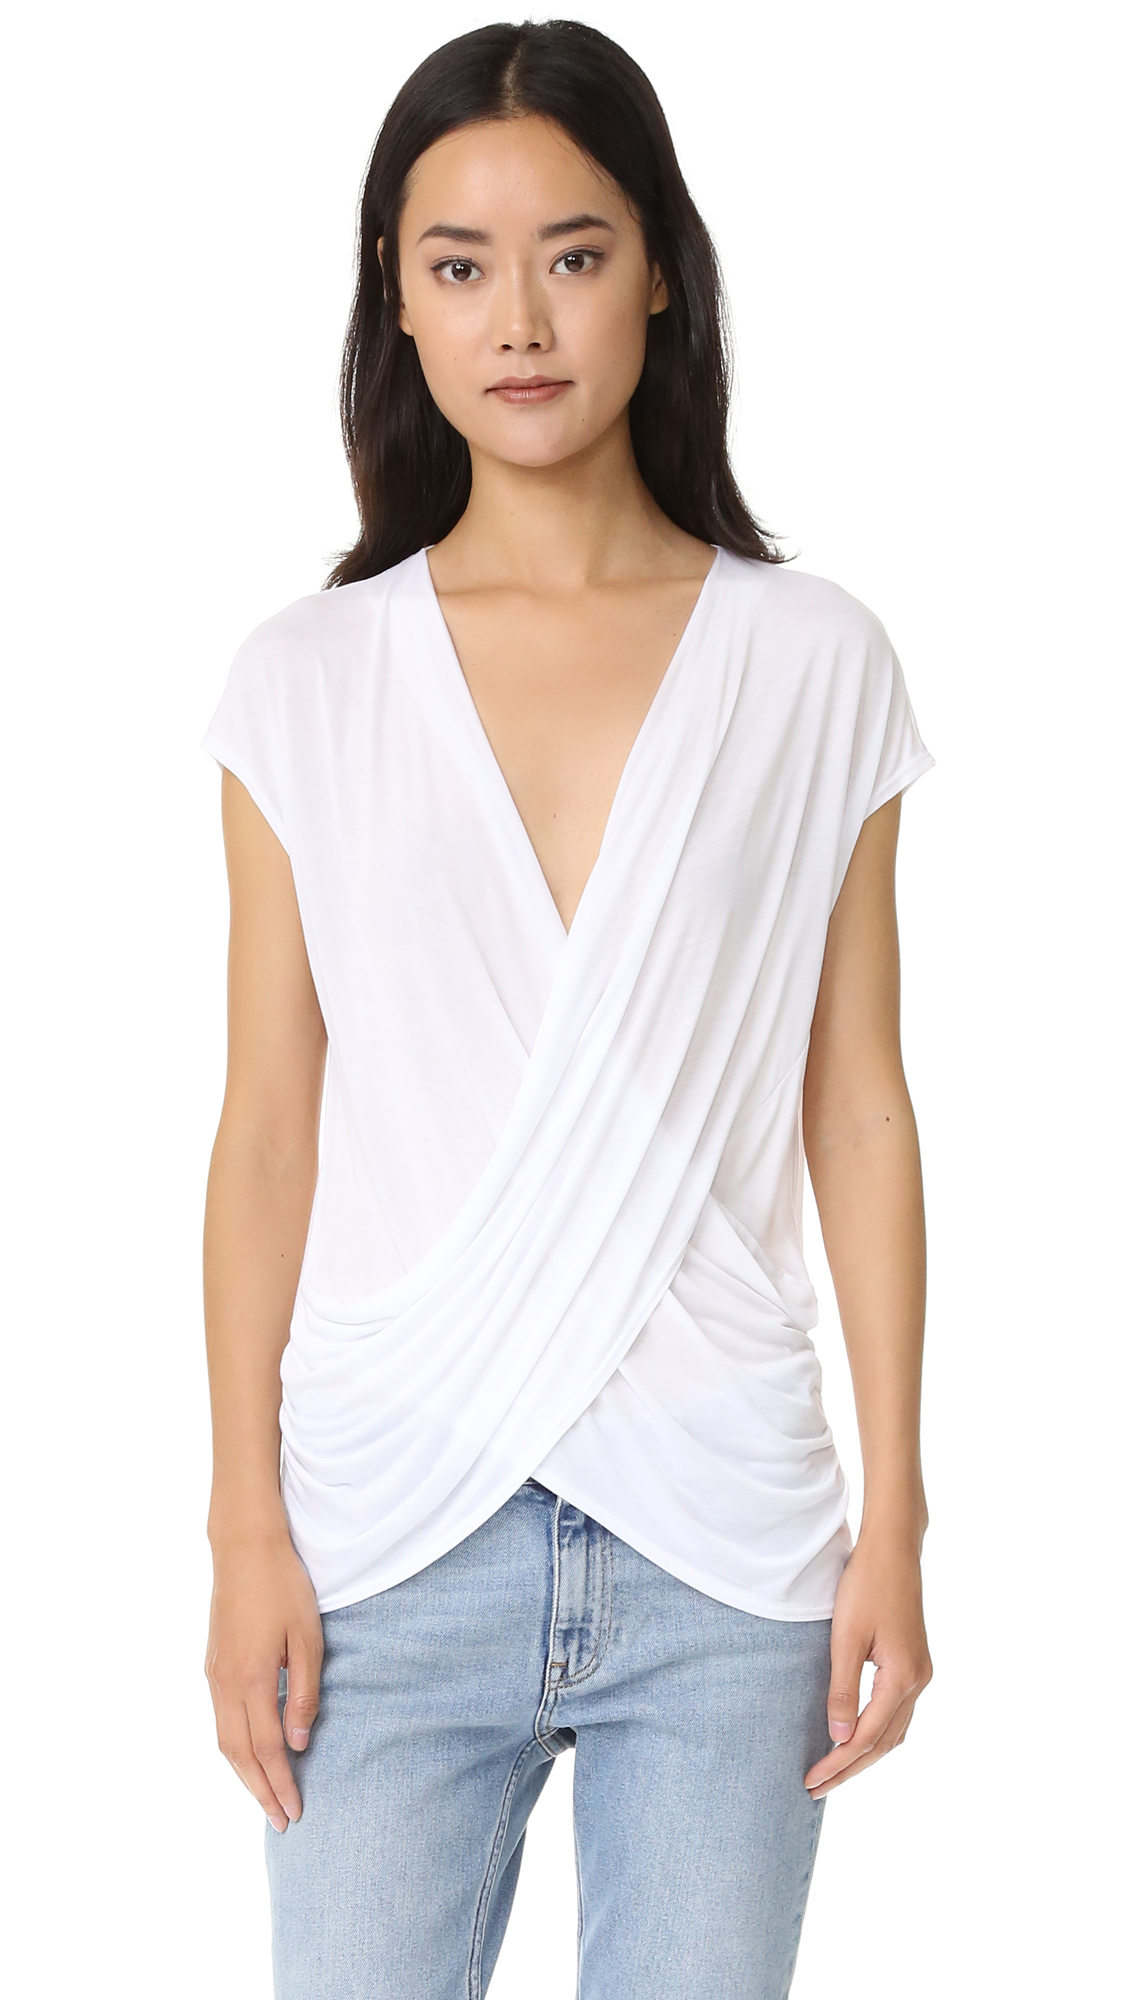 Lanston Crossover Surplice Top - White at Shopbop